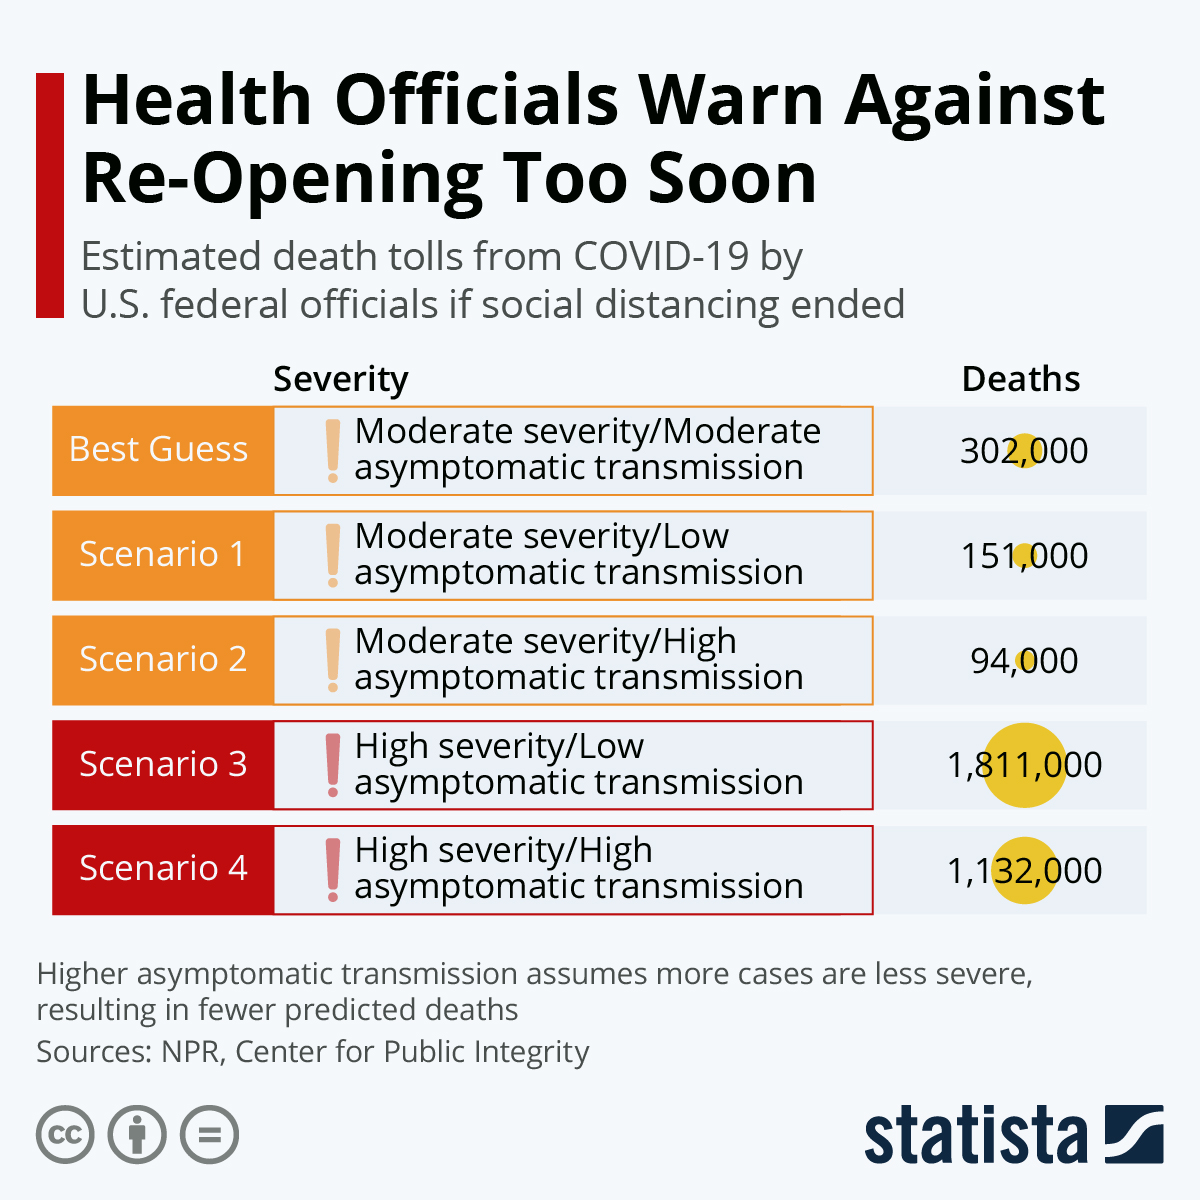 'Health Officials Warn Against Re-Opening Too Soon.' Estimated death tolls from COVID-19 by U.S. federal officials if social distancing ended. Higher asymptomatic transmission assume more cases are less severe, resulting in fewer predicted deaths. Table from April 21, 2020 lists estimated deaths by scenario,